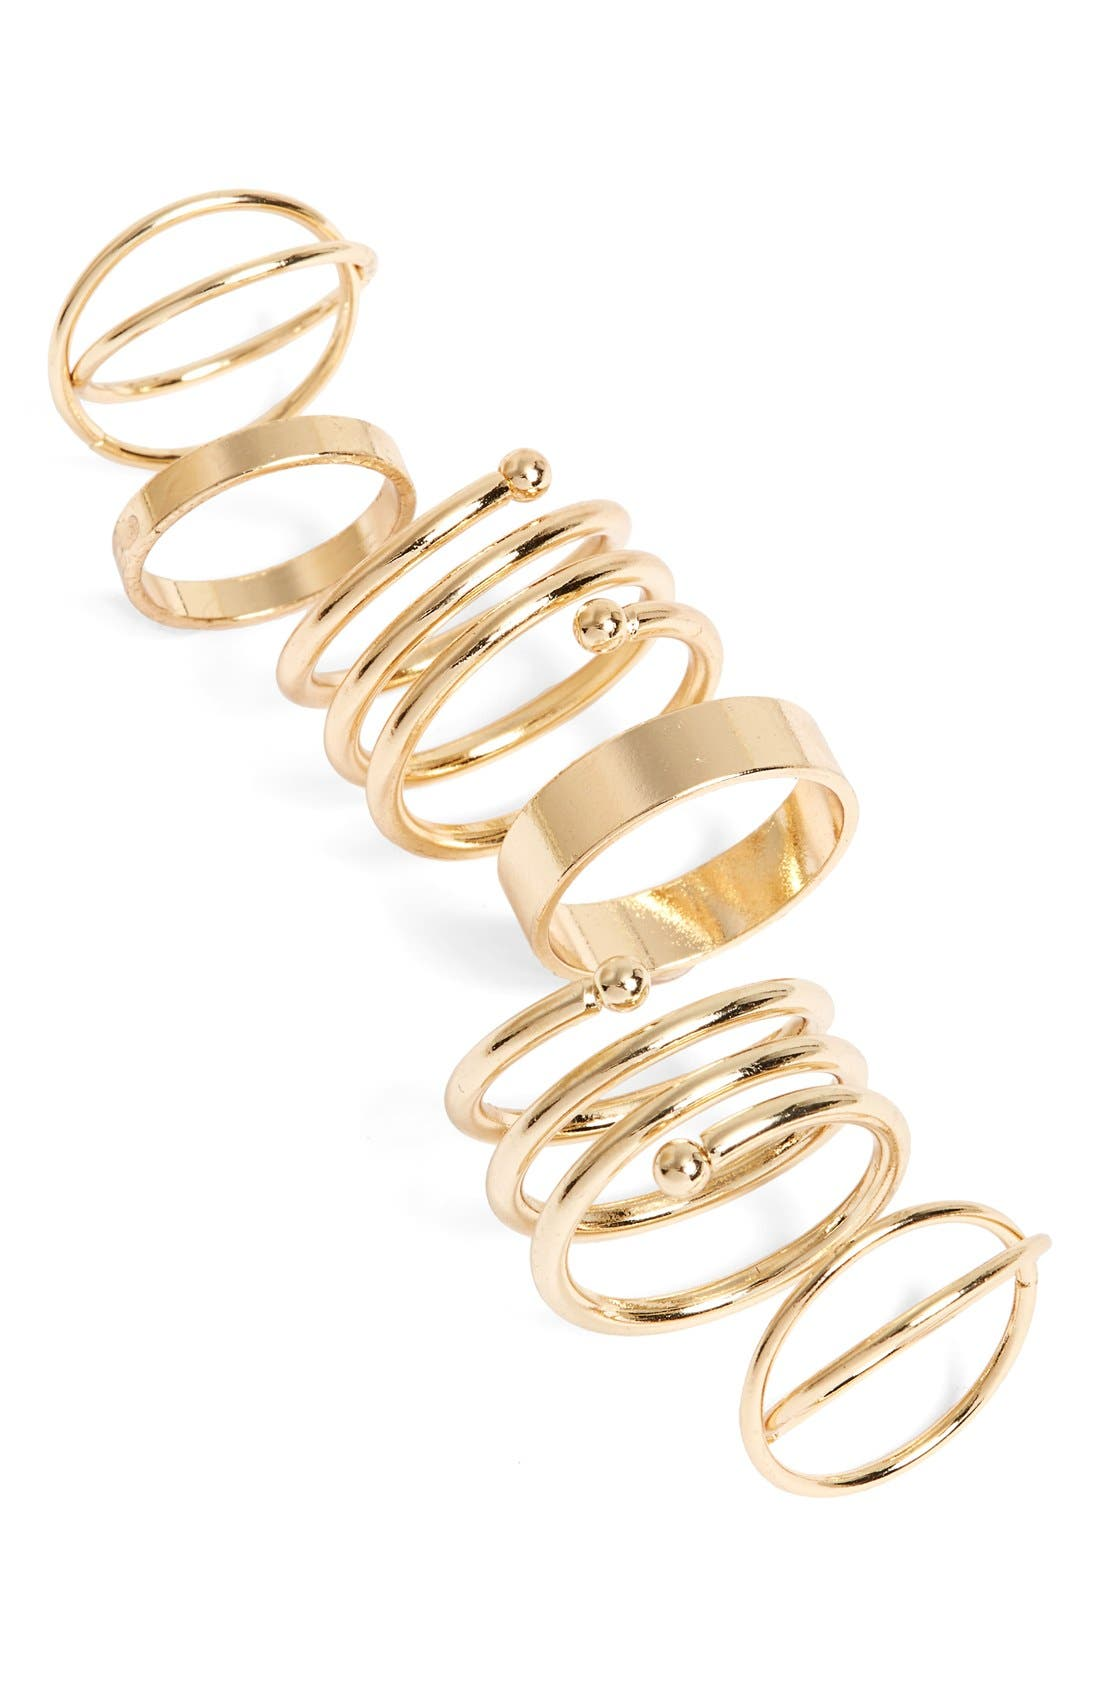 Main Image - BP. Rings (Set of 6)